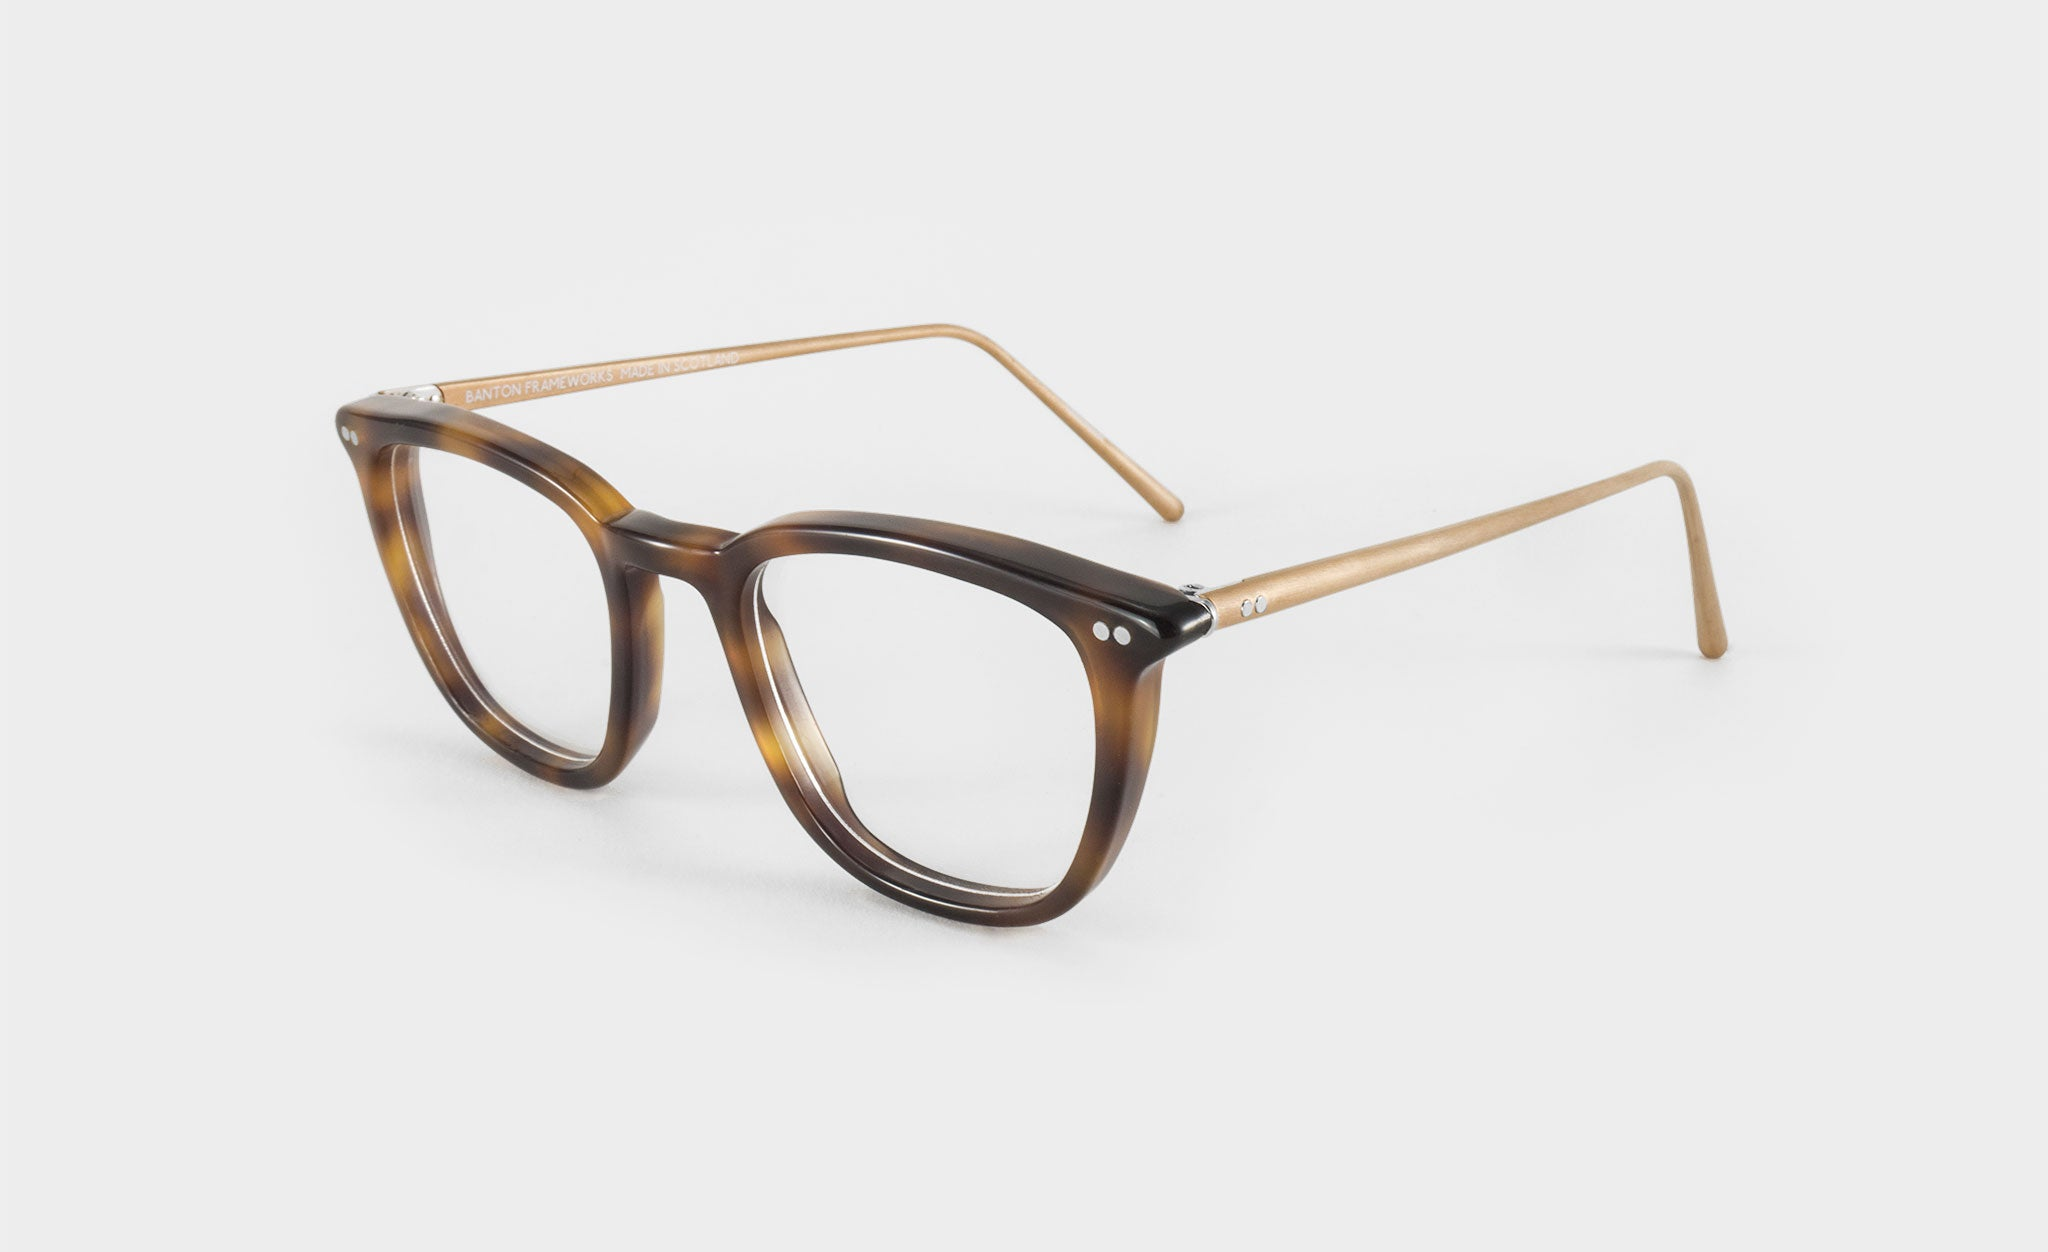 square tortoise shell glasses side view